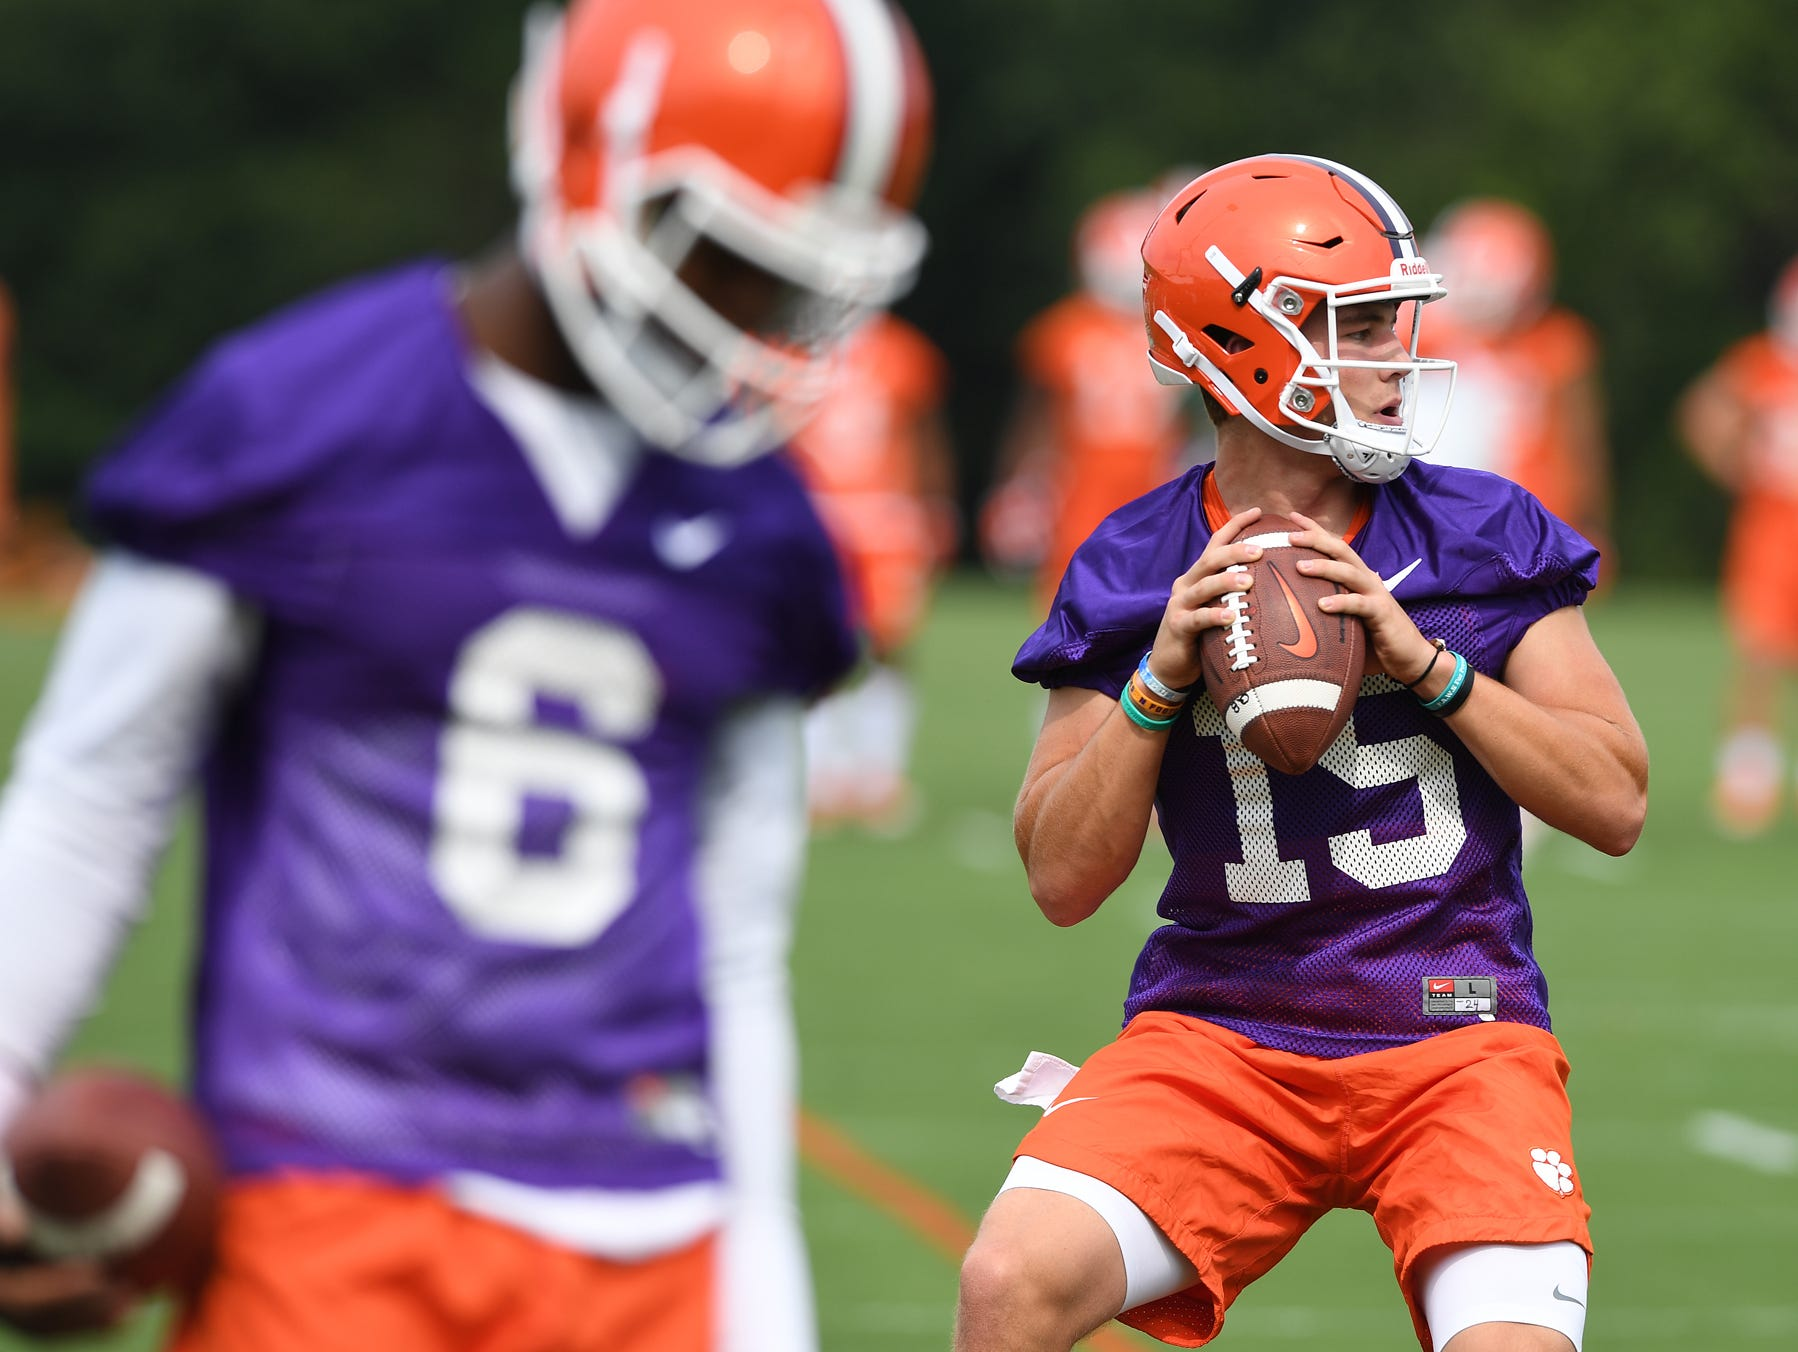 Check Out This Photo Gallery Of Clemson Getting Ready For The New Season!